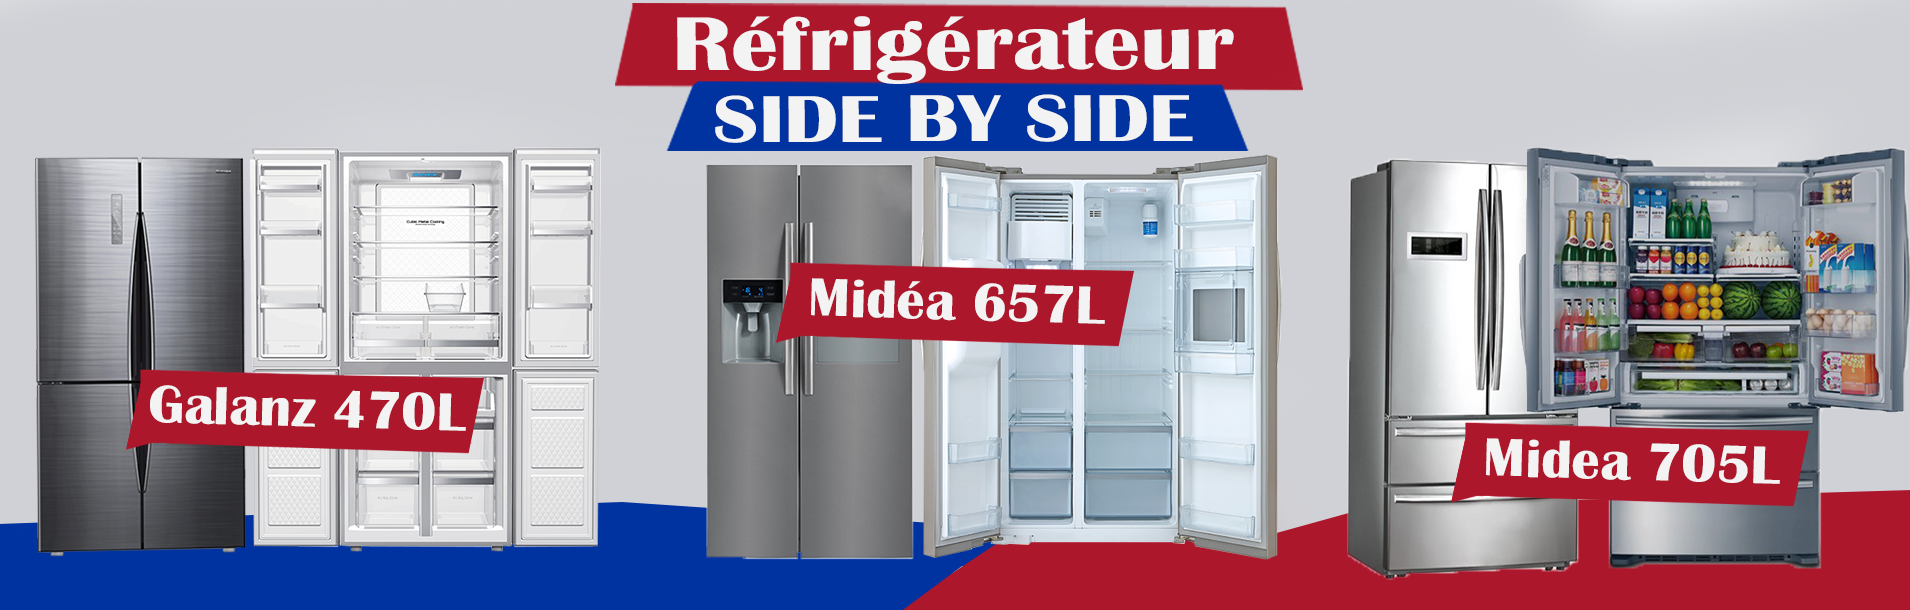 REFRIGERATEUR SBS